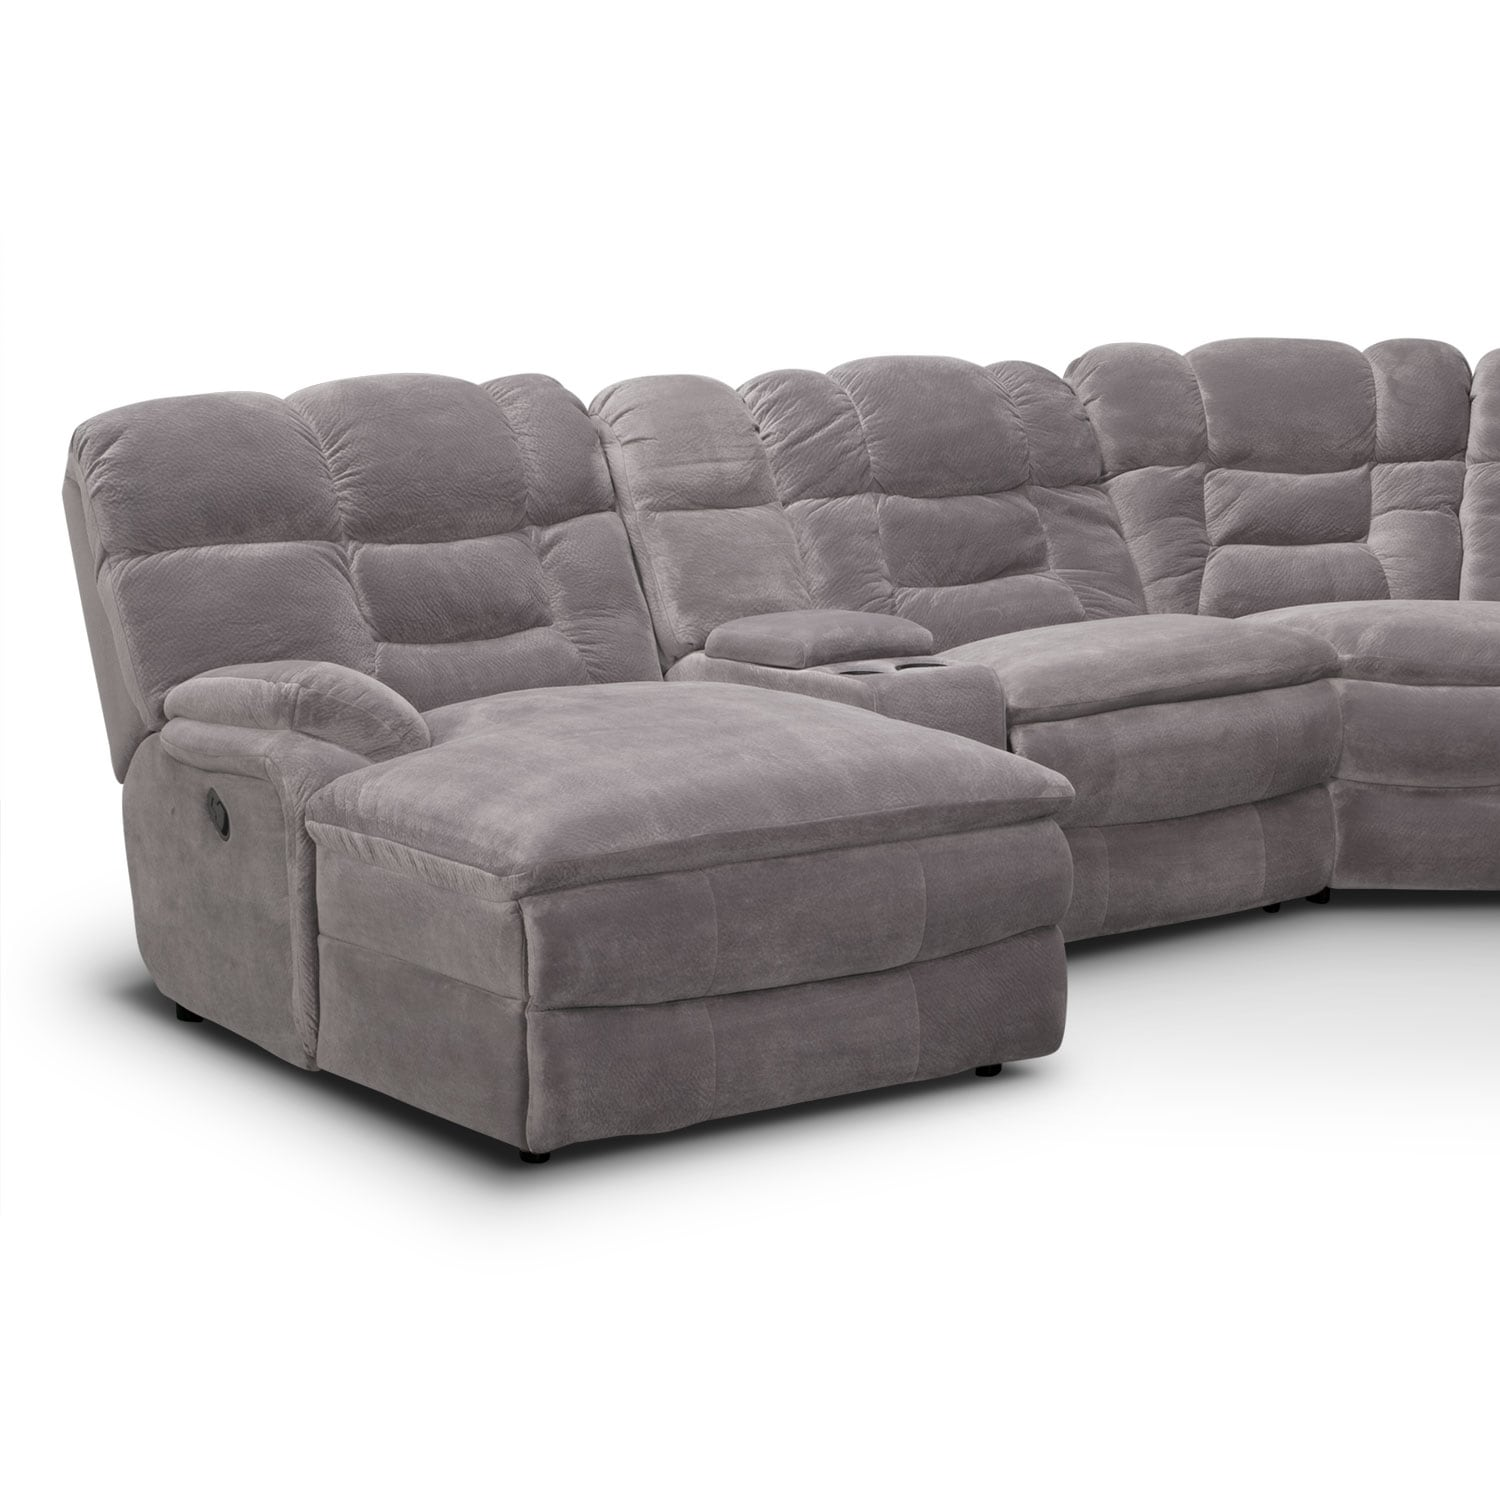 Big Softie Ii 6 Pc Power Reclining Sectional Reverse